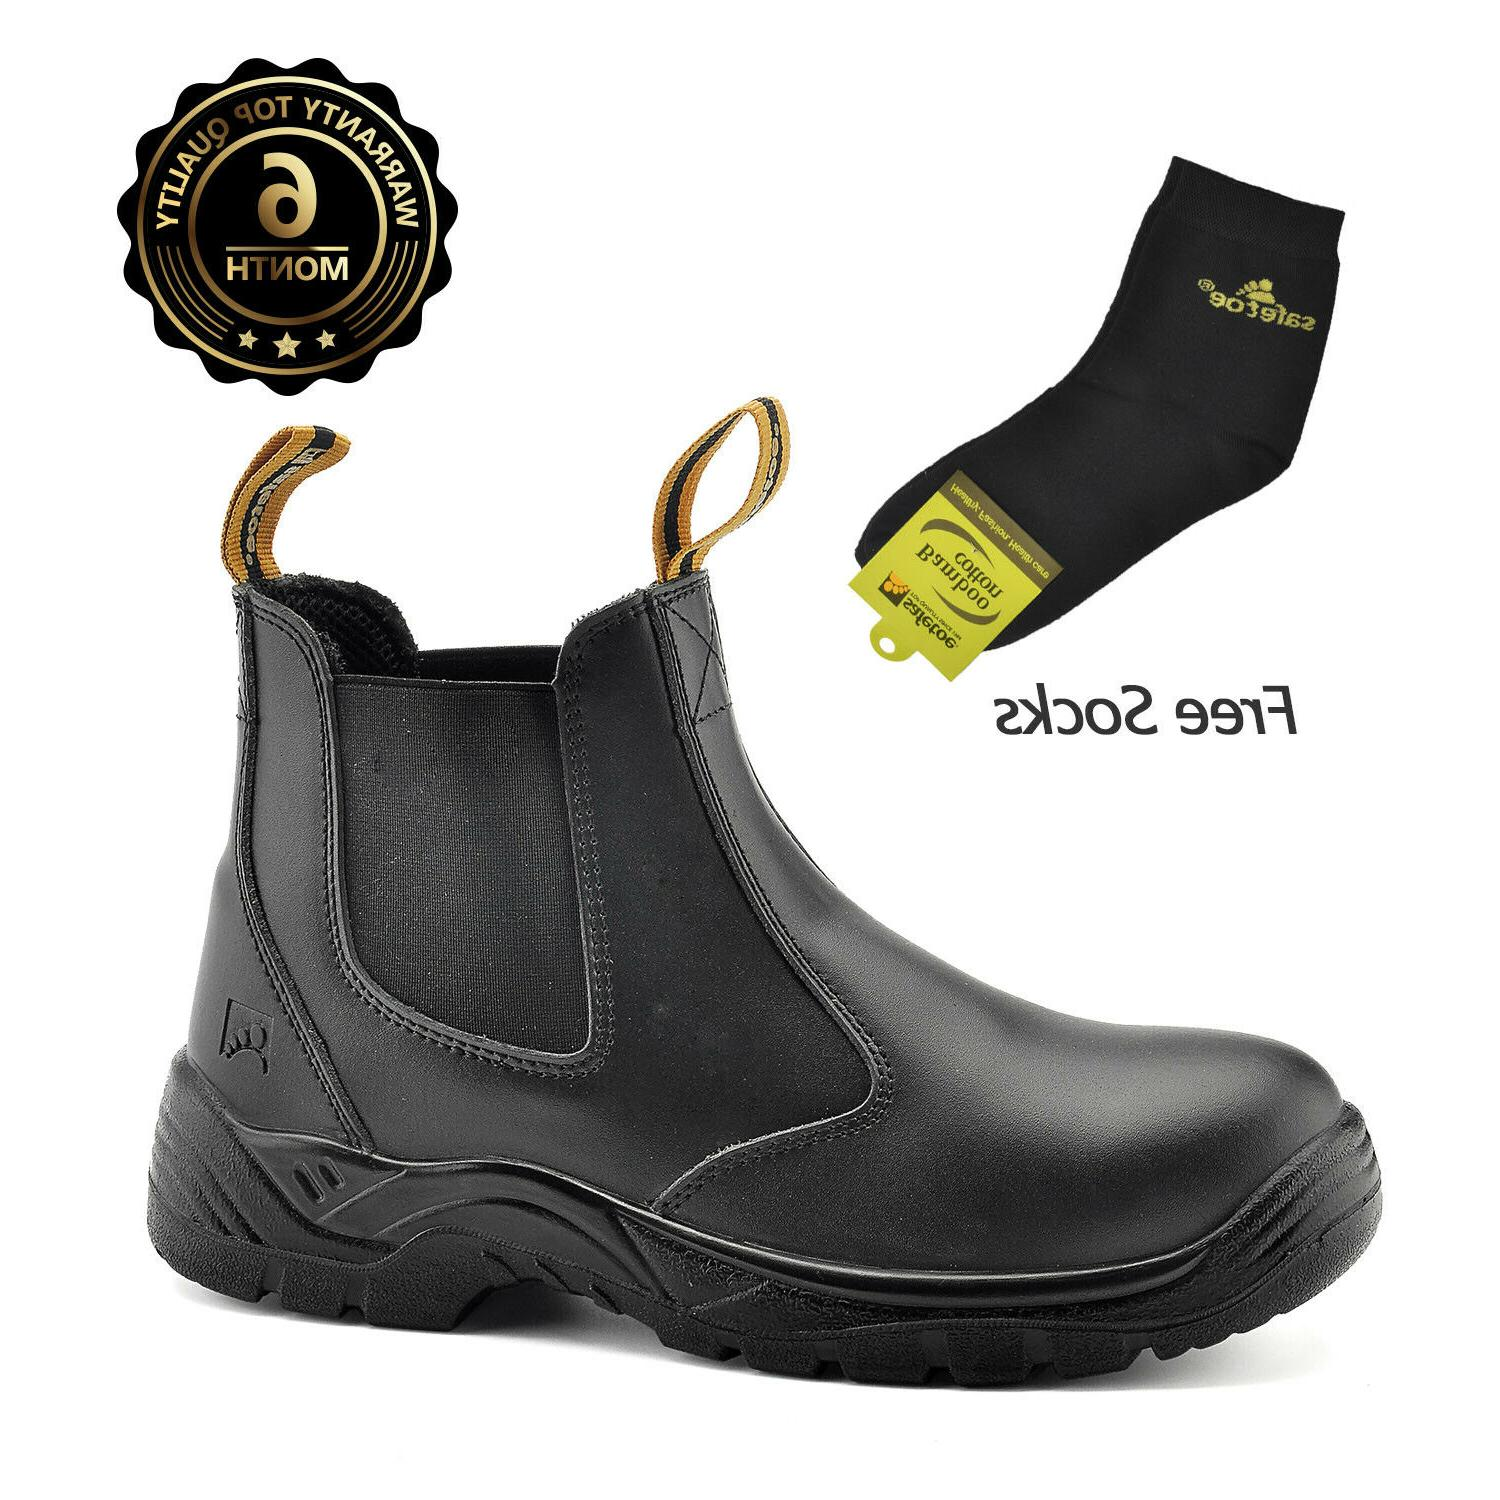 safety boots men work shoes leather steel